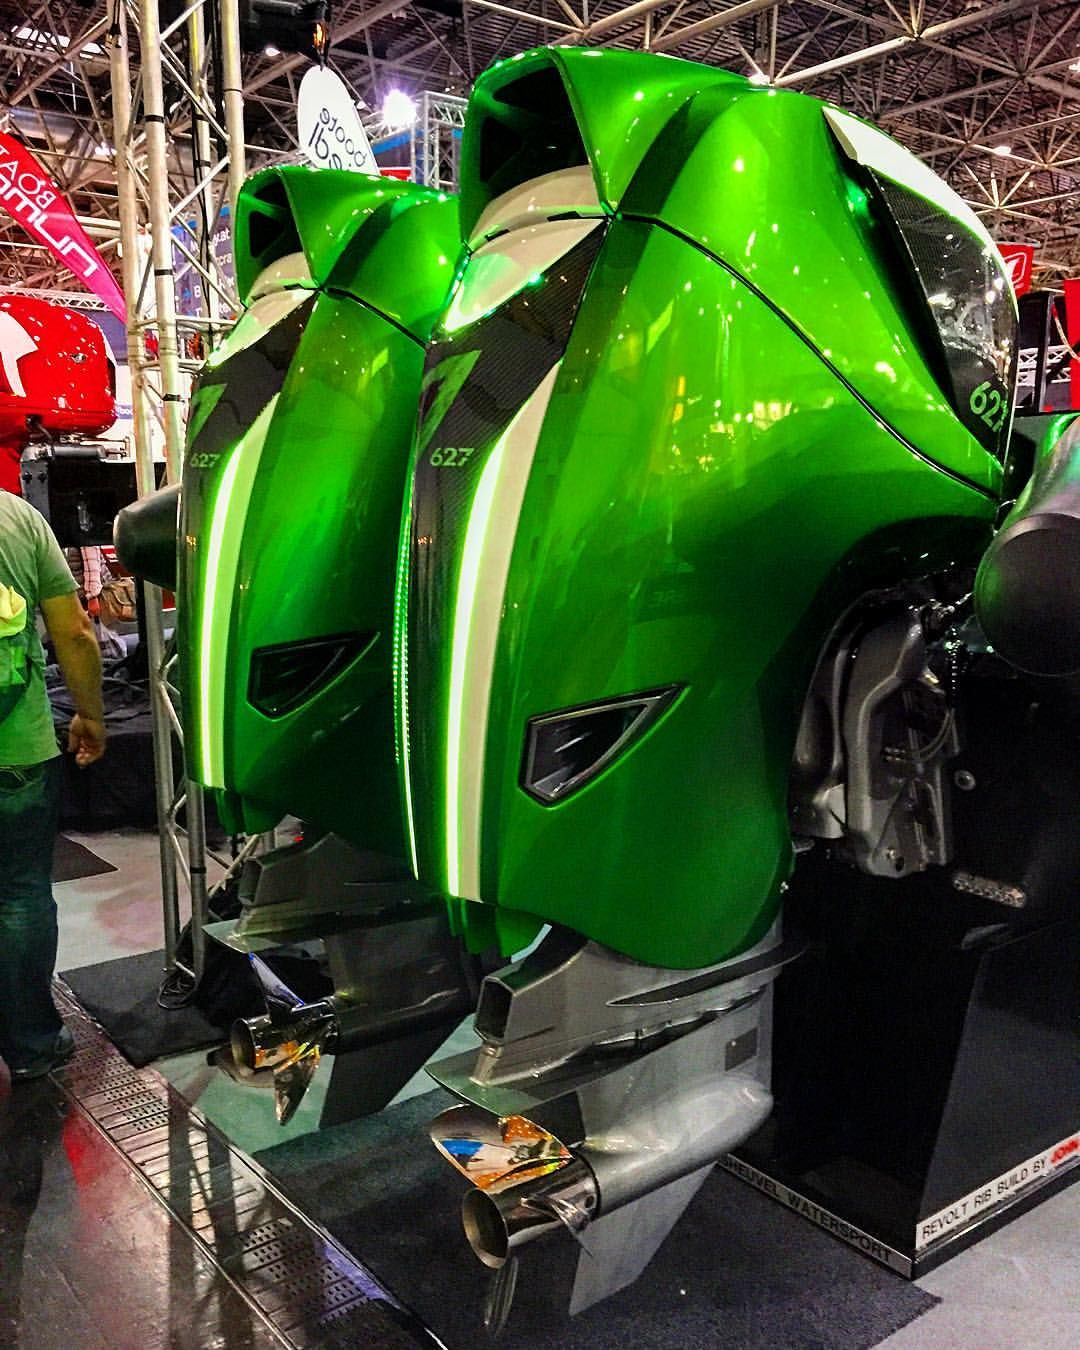 Seven Marine 627 Outboards In Green